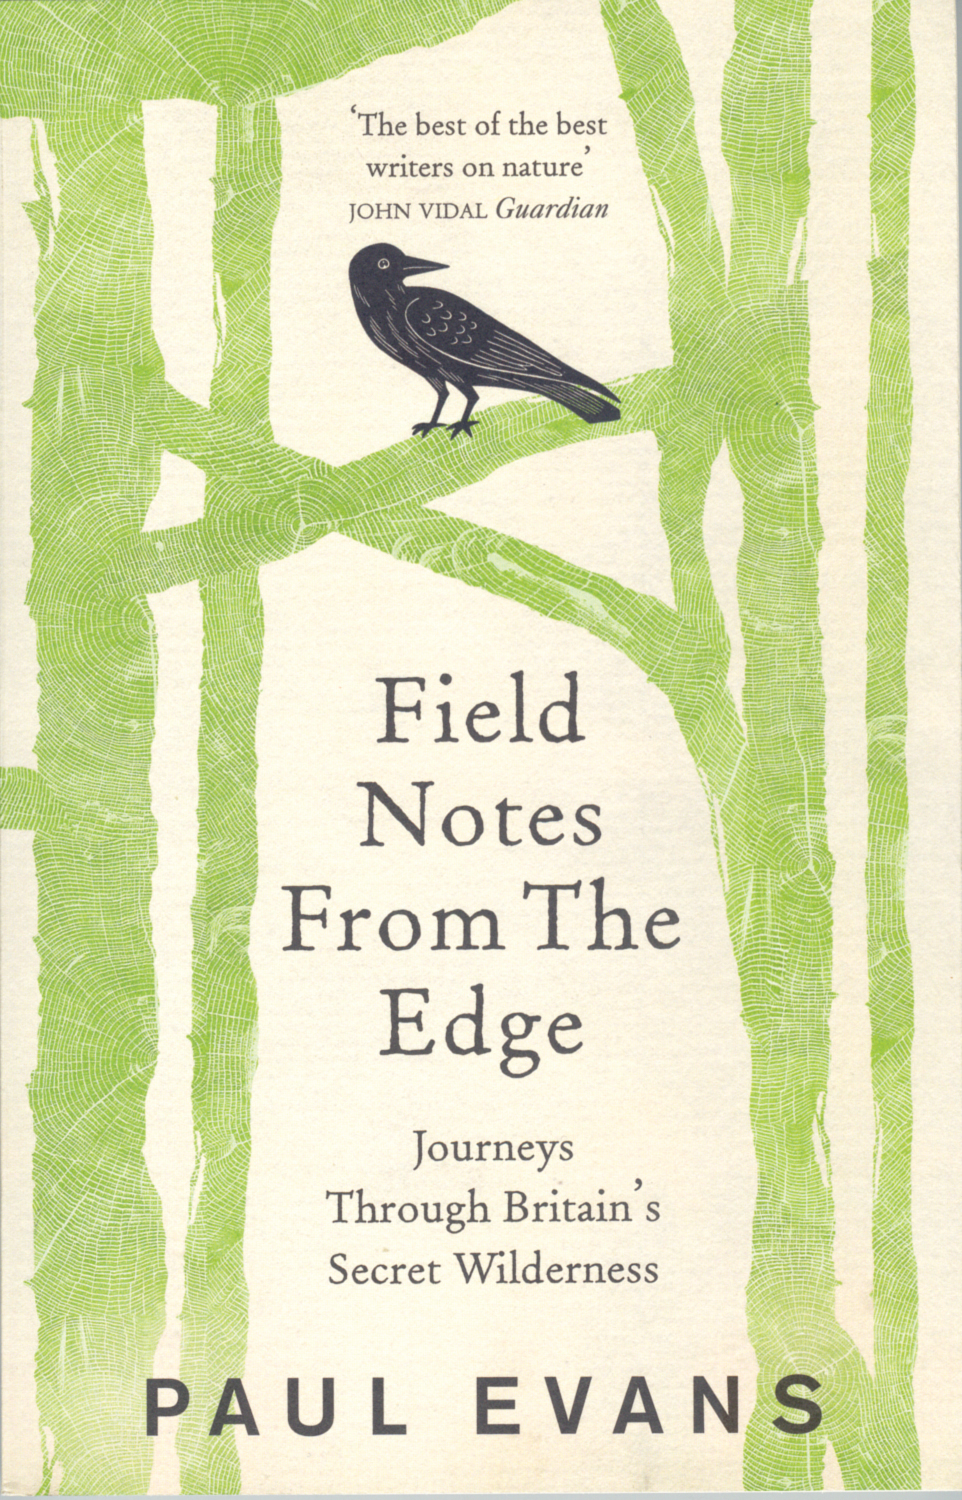 PICTURED: Field Notes From The Edge, by Paul Evans, Penguin, 18.99